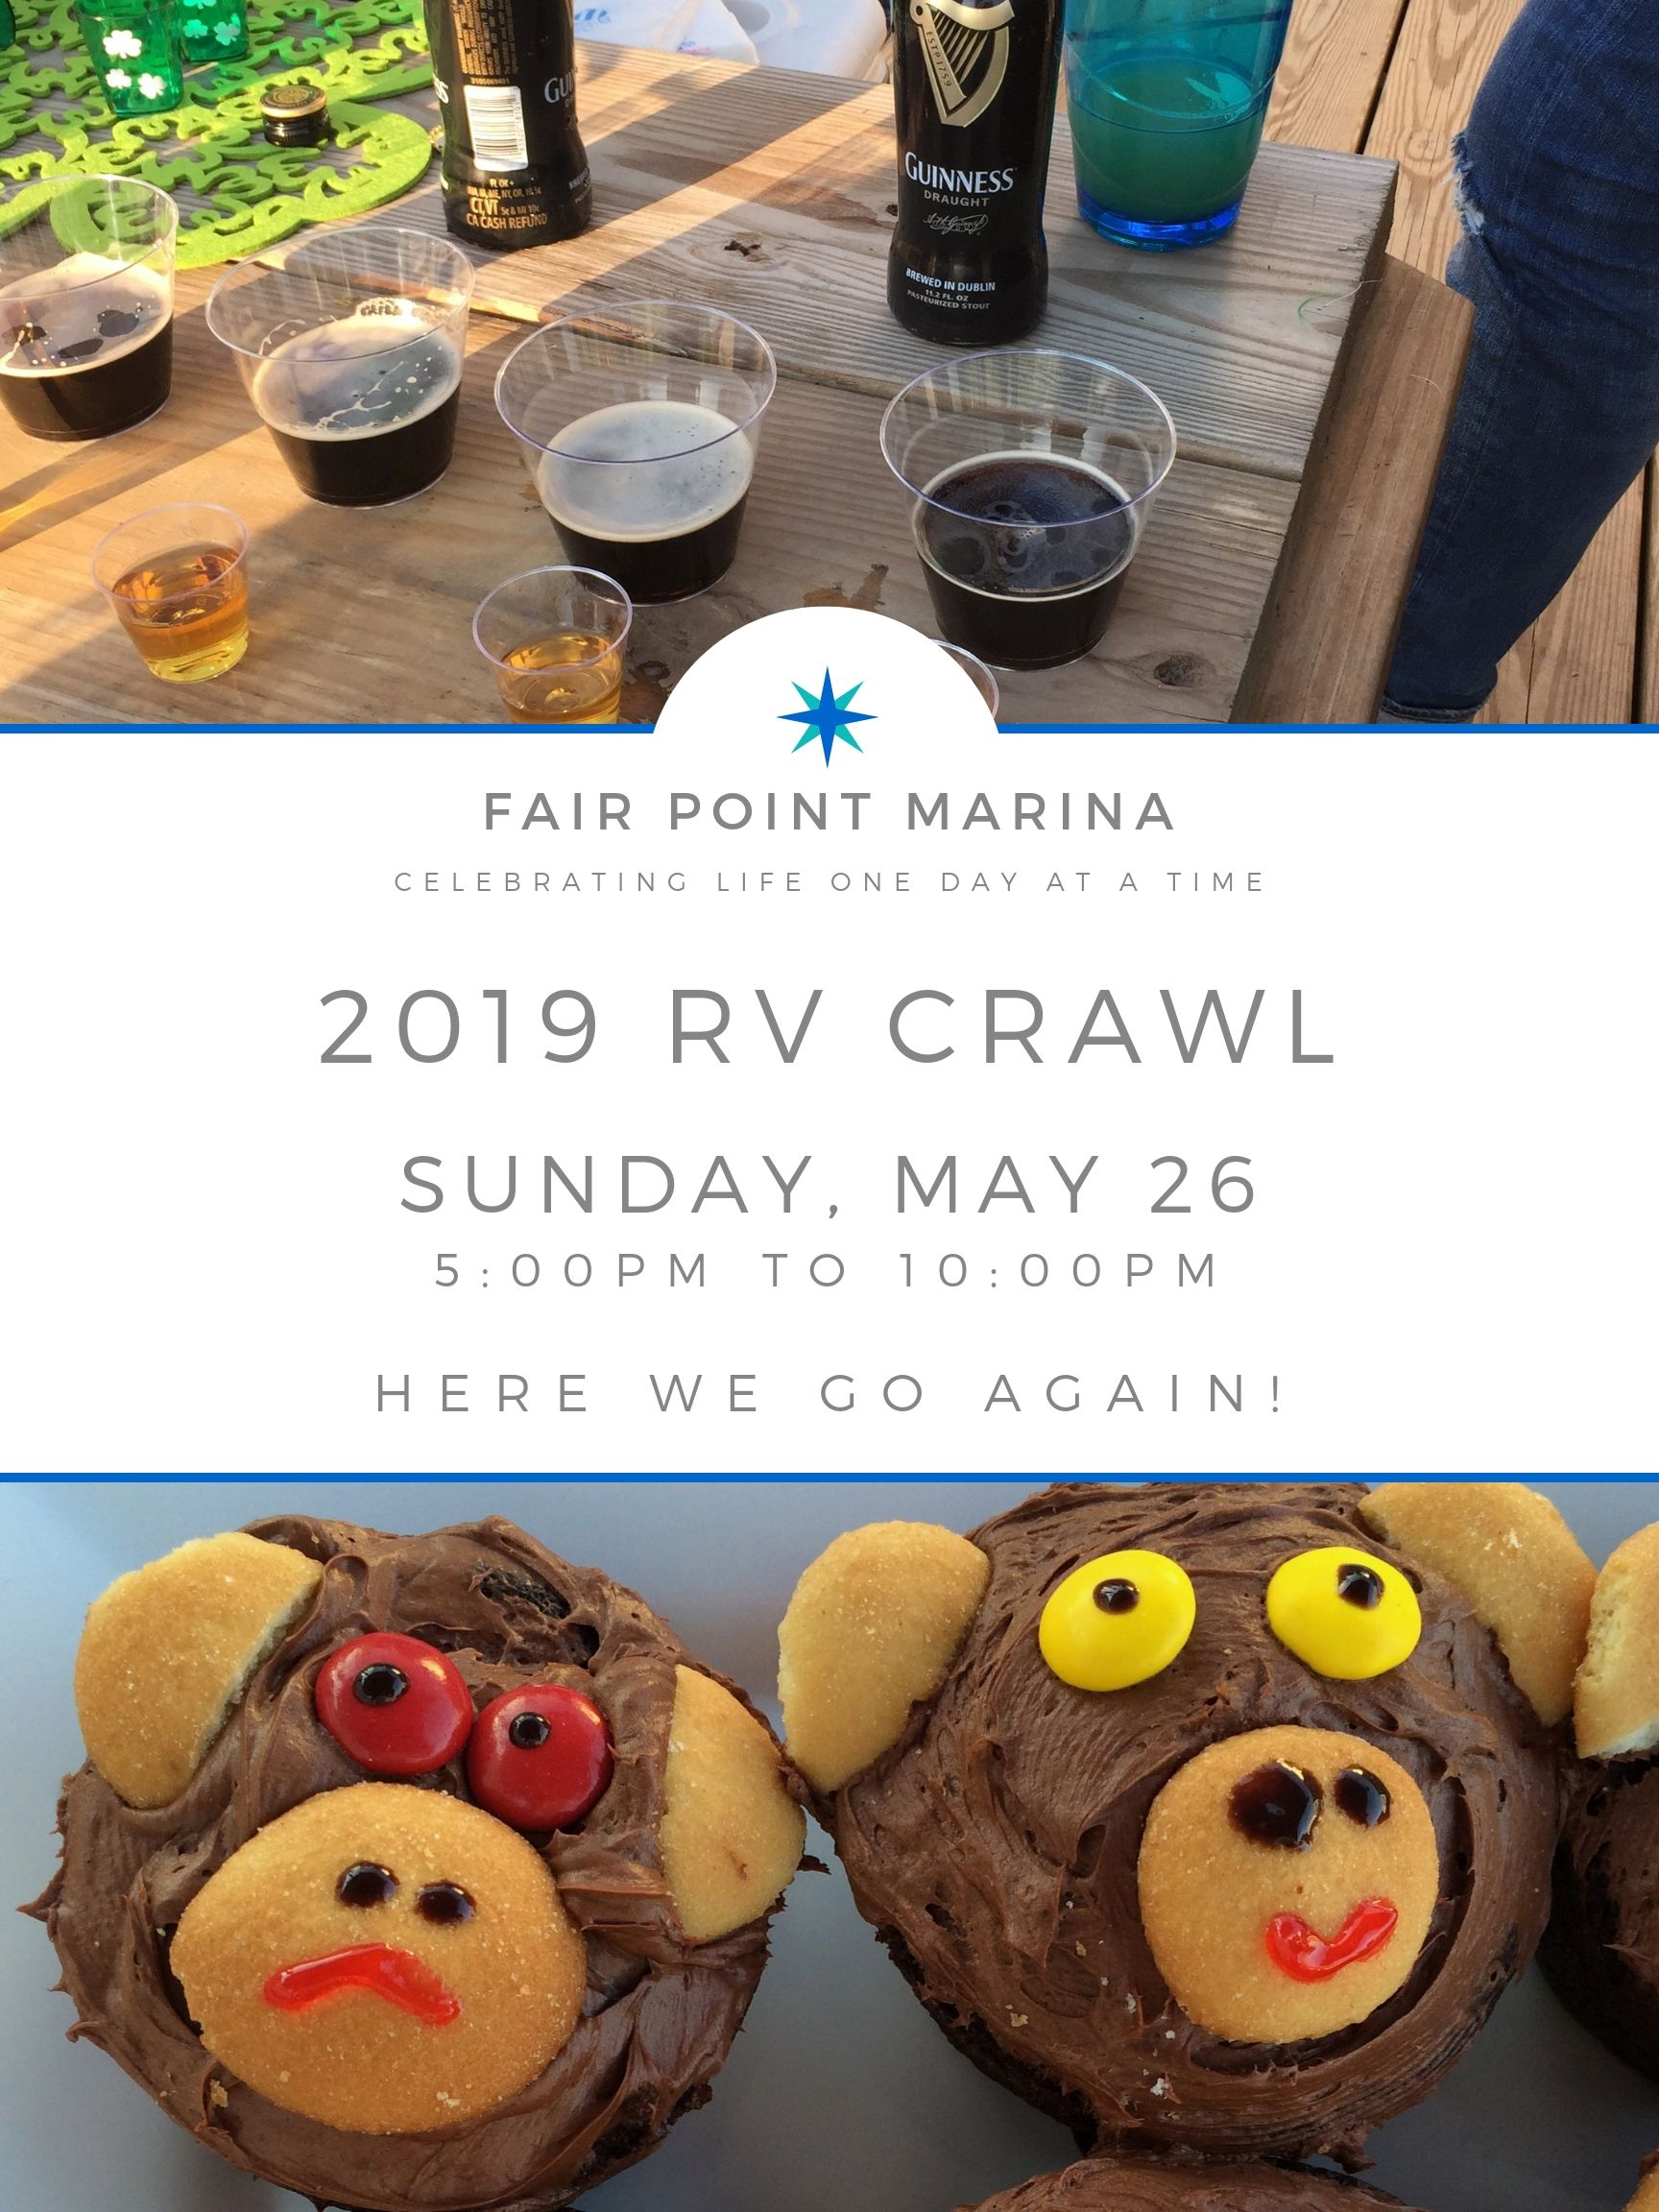 Event flyer for the Fair Point Marina 2019 RV Crawl